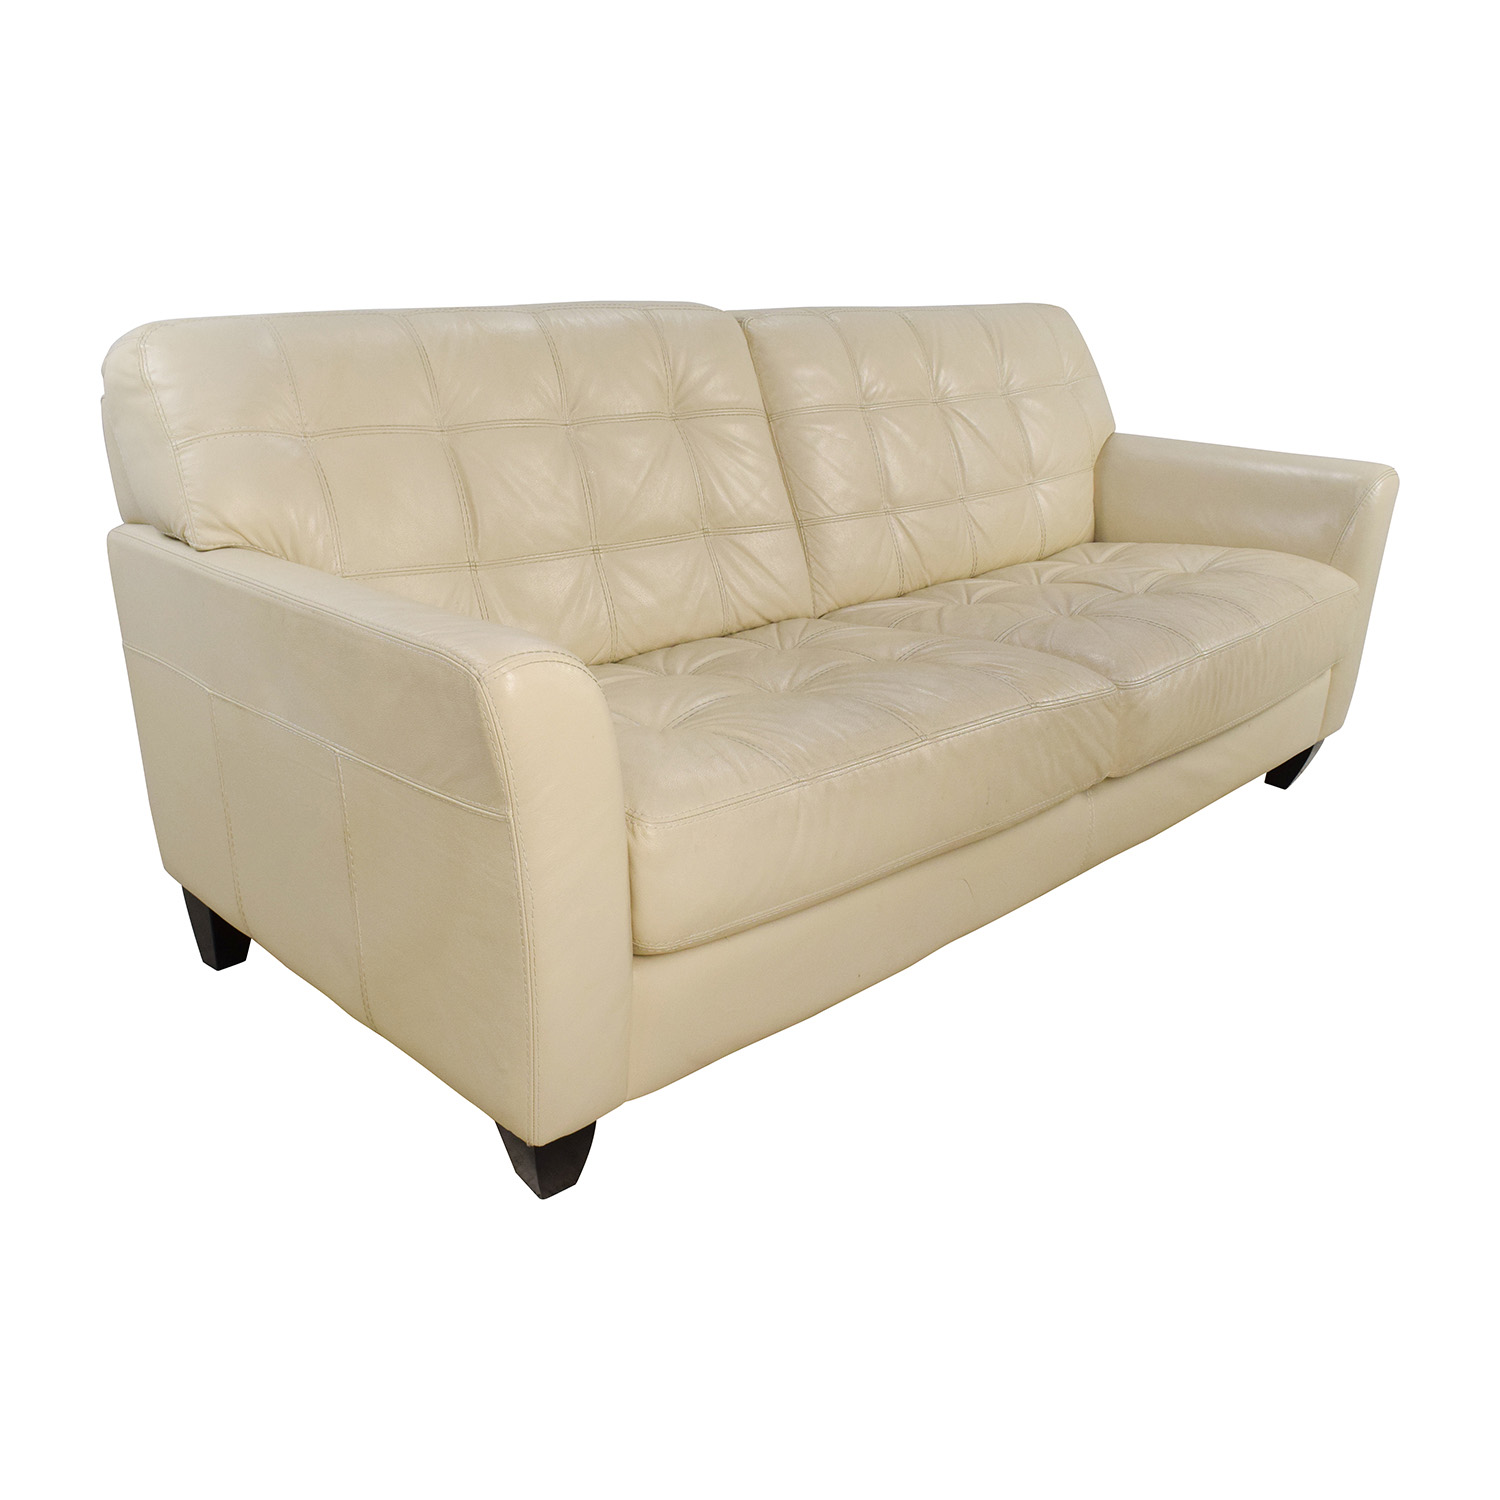 10 Best Collection Of Off White Leather Sofas: Leather Sofa Macys Furniture Marsilla Leather Sofa